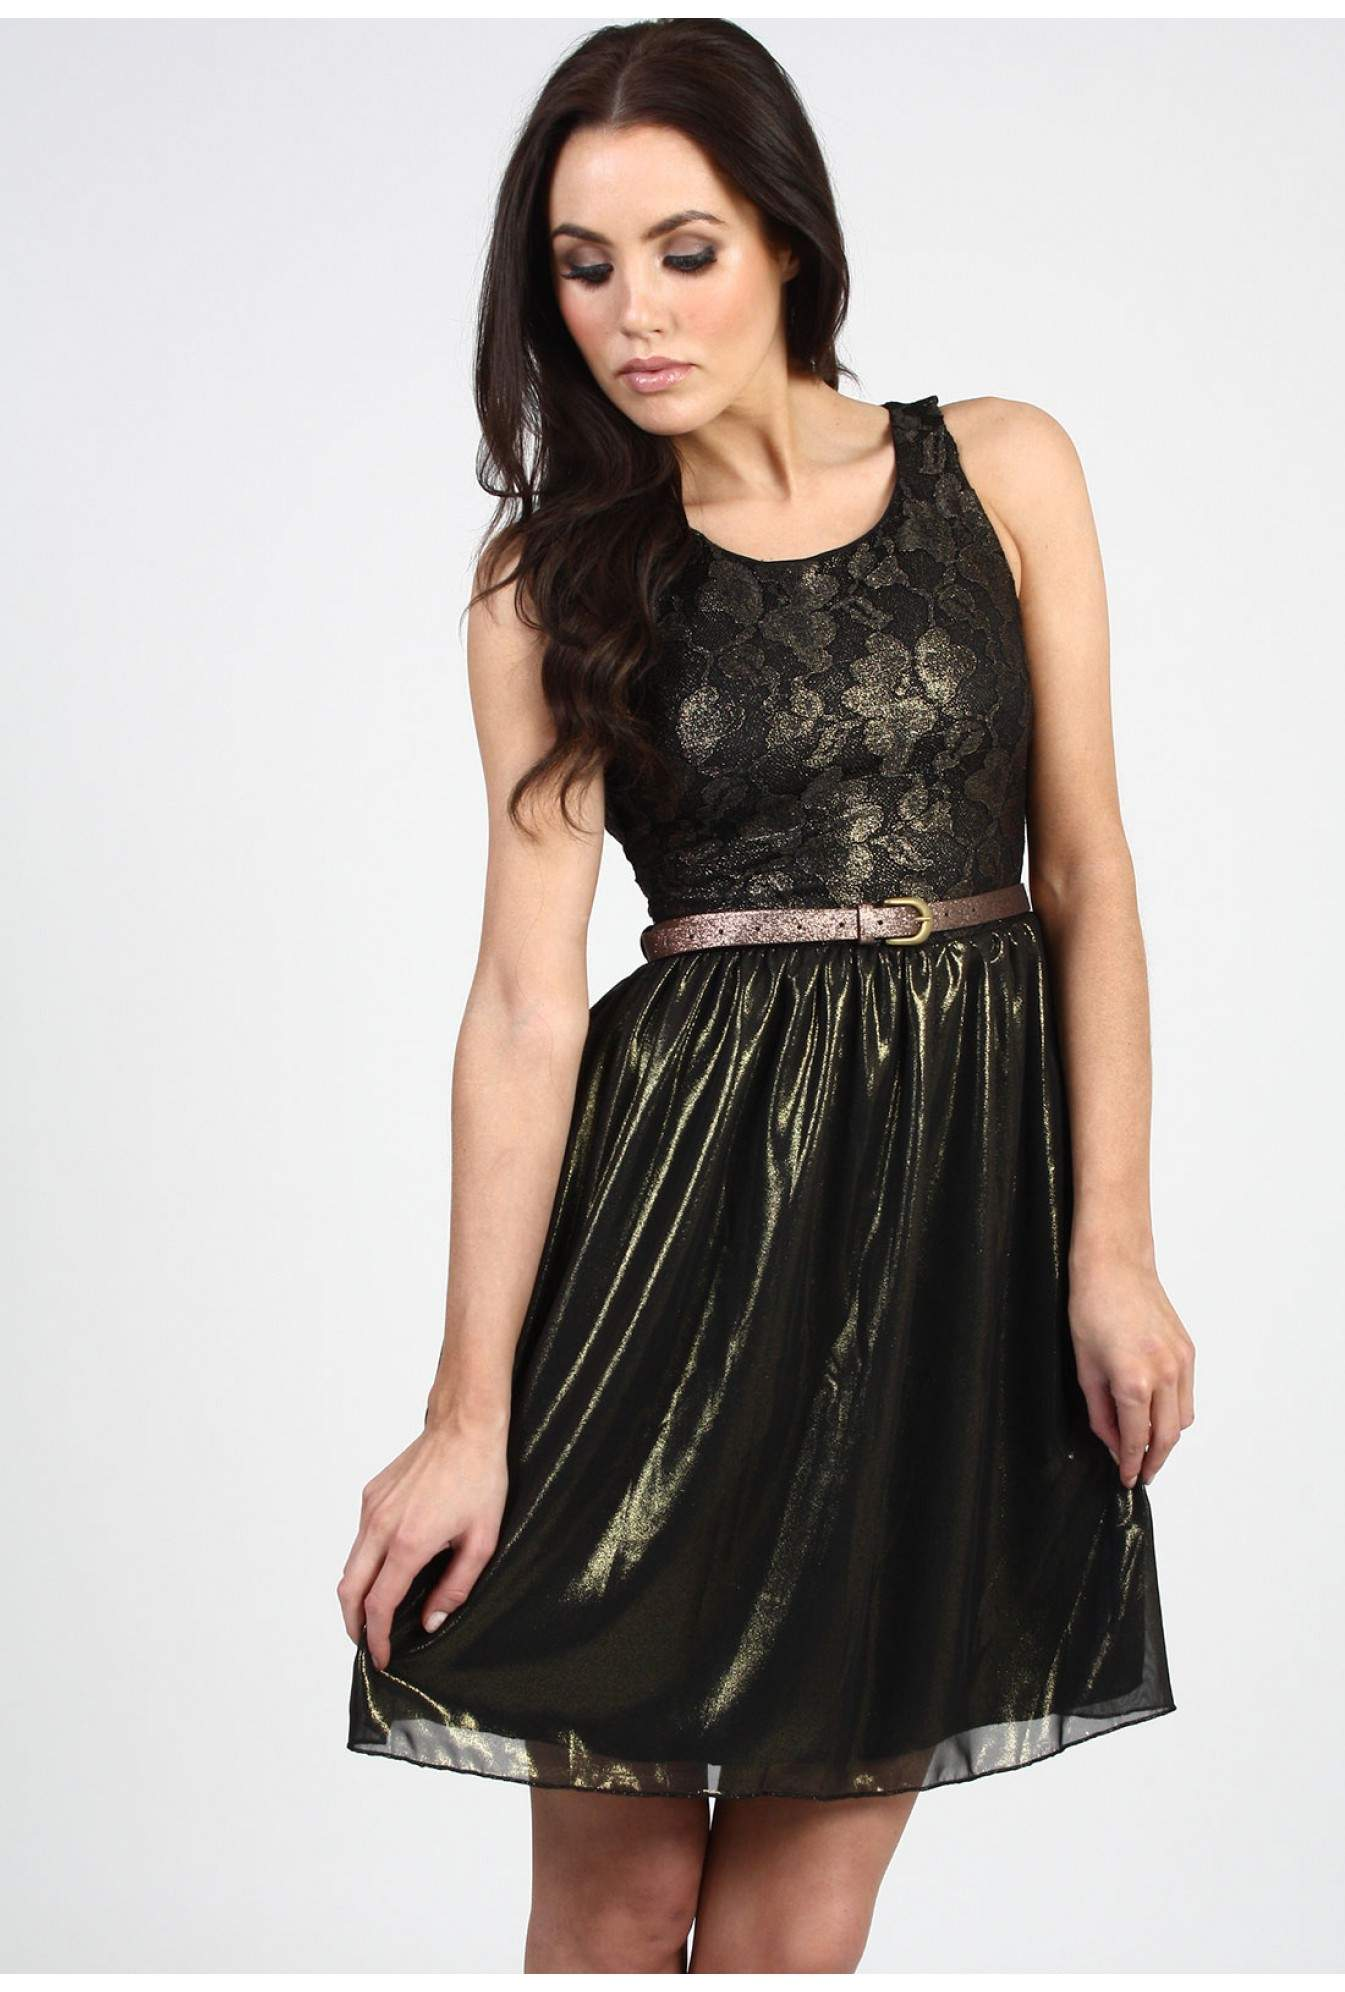 582210e1f8c More Views. Kate Metallic Lace Dress